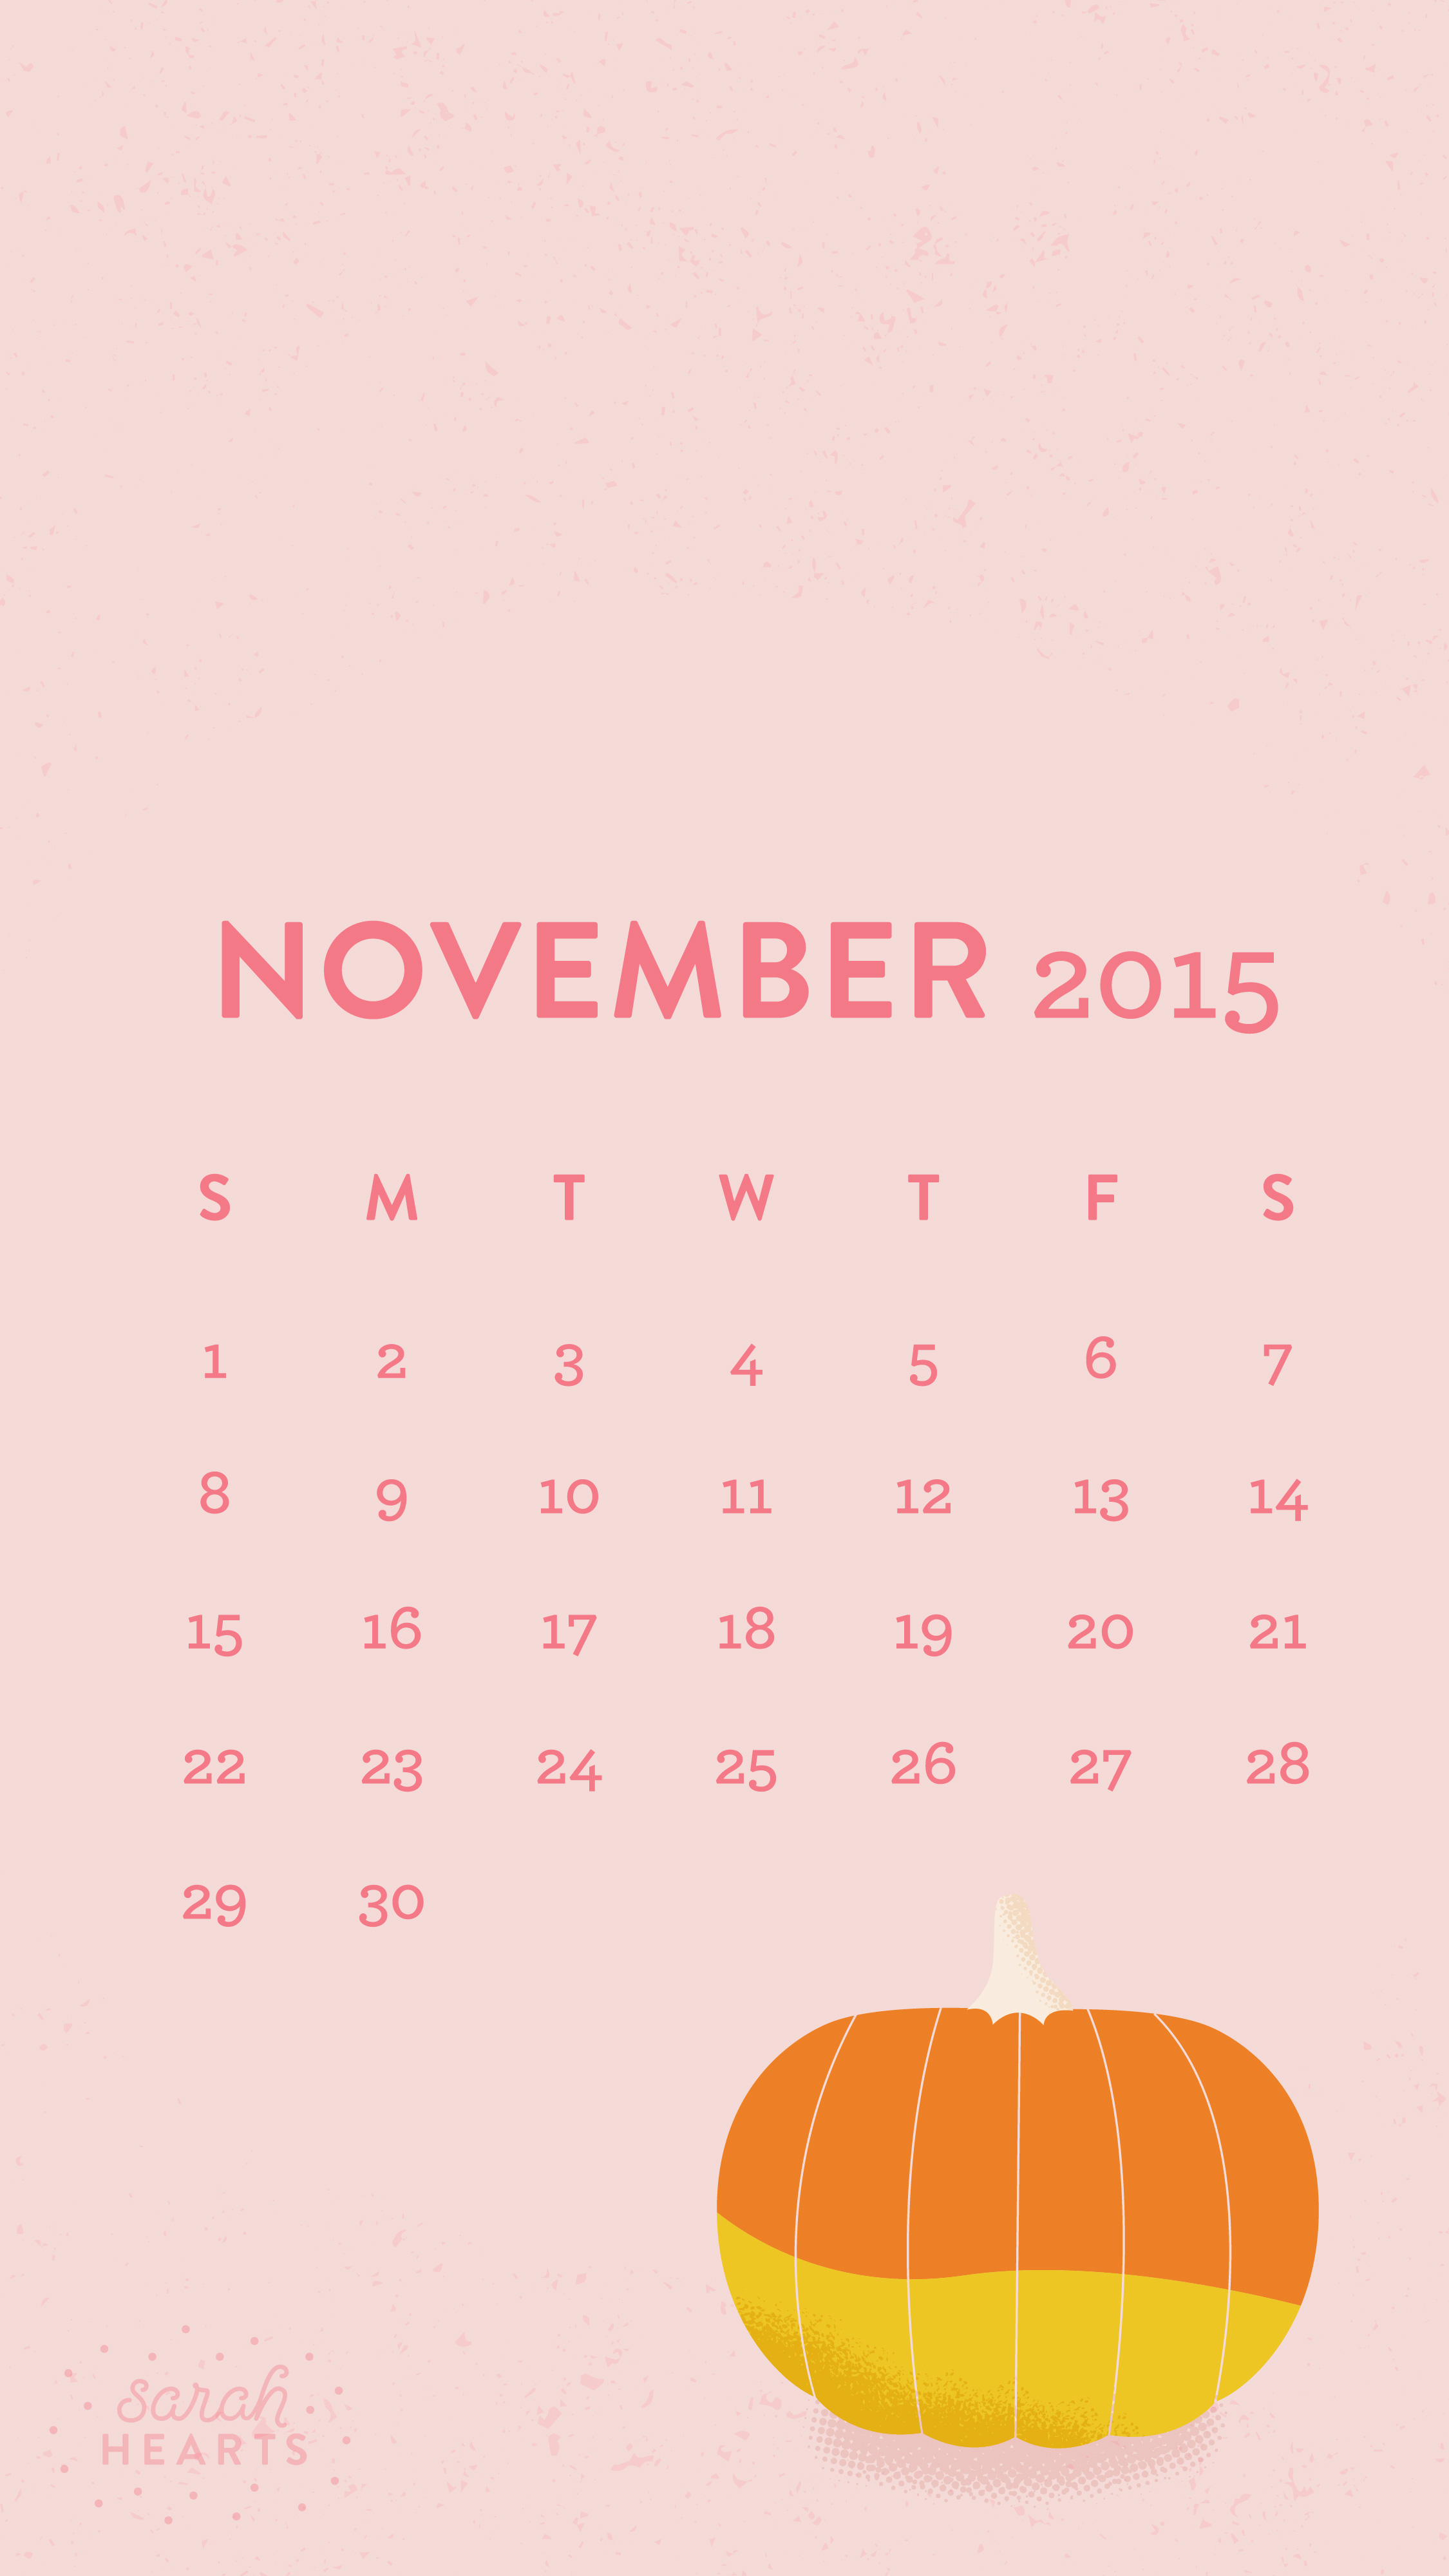 Iphone Calendar Wallpaper November : November calendar wallpaper sarah hearts